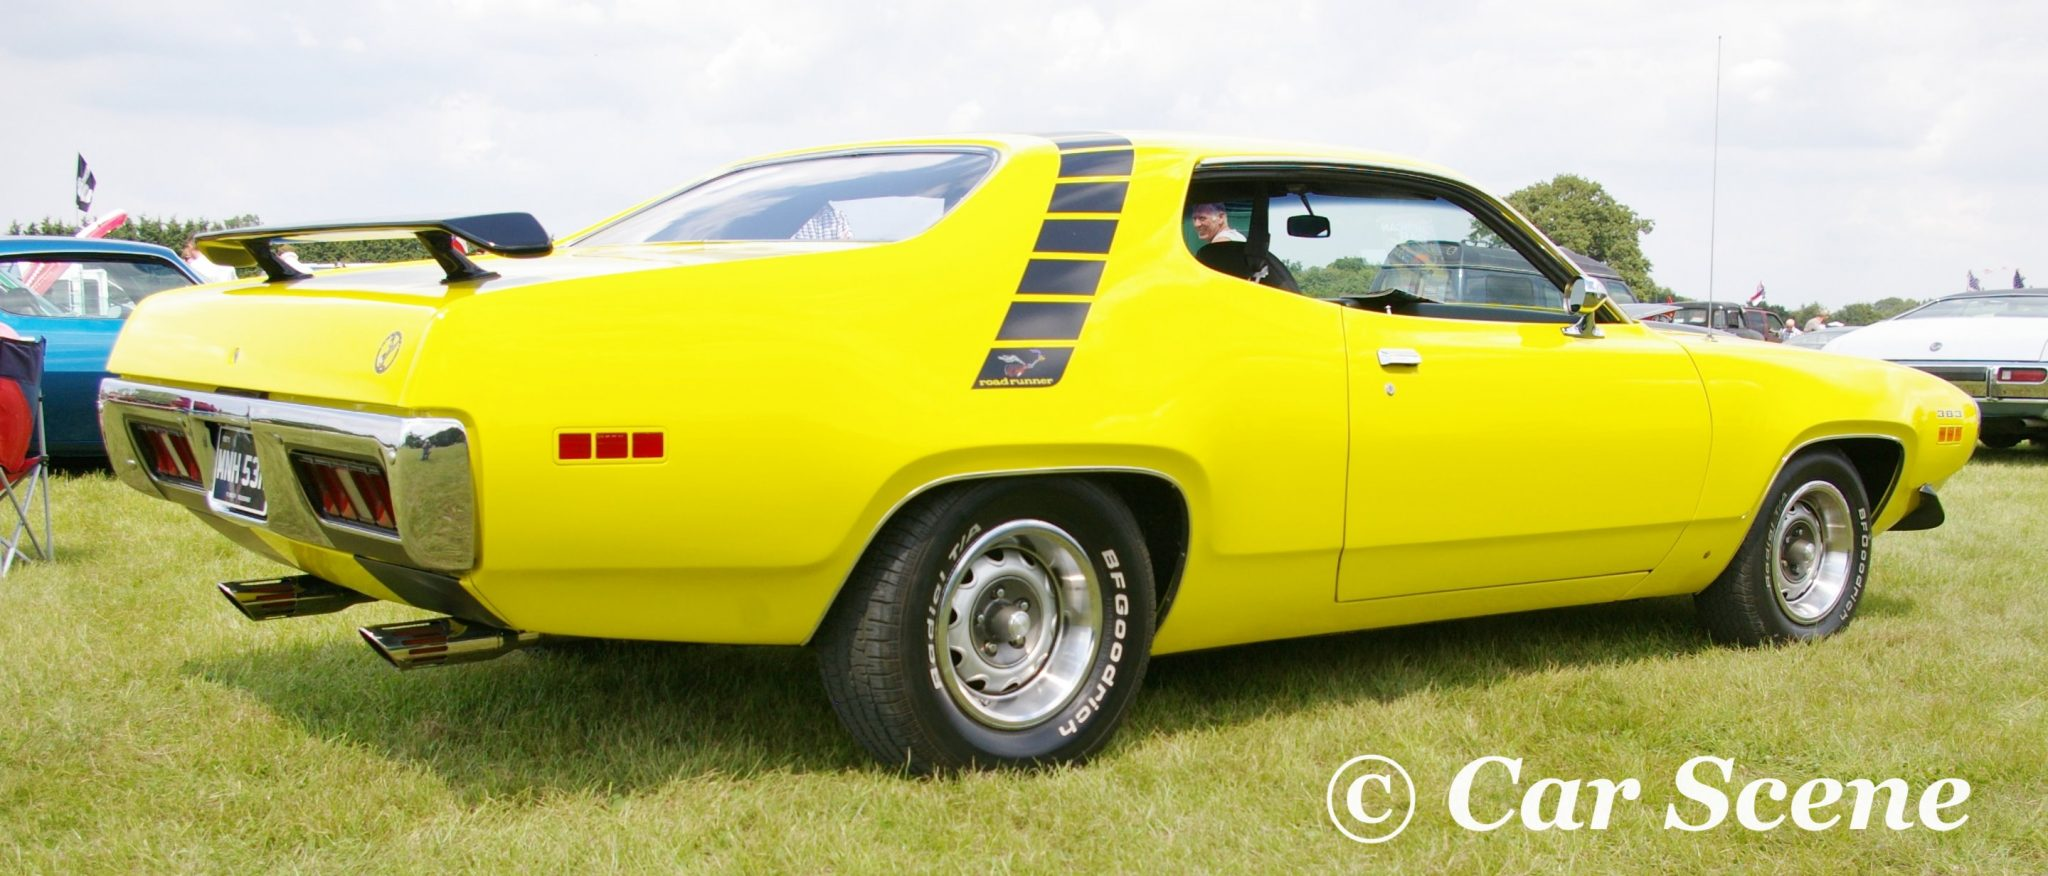 1972 Plymouth Road Runner II side view